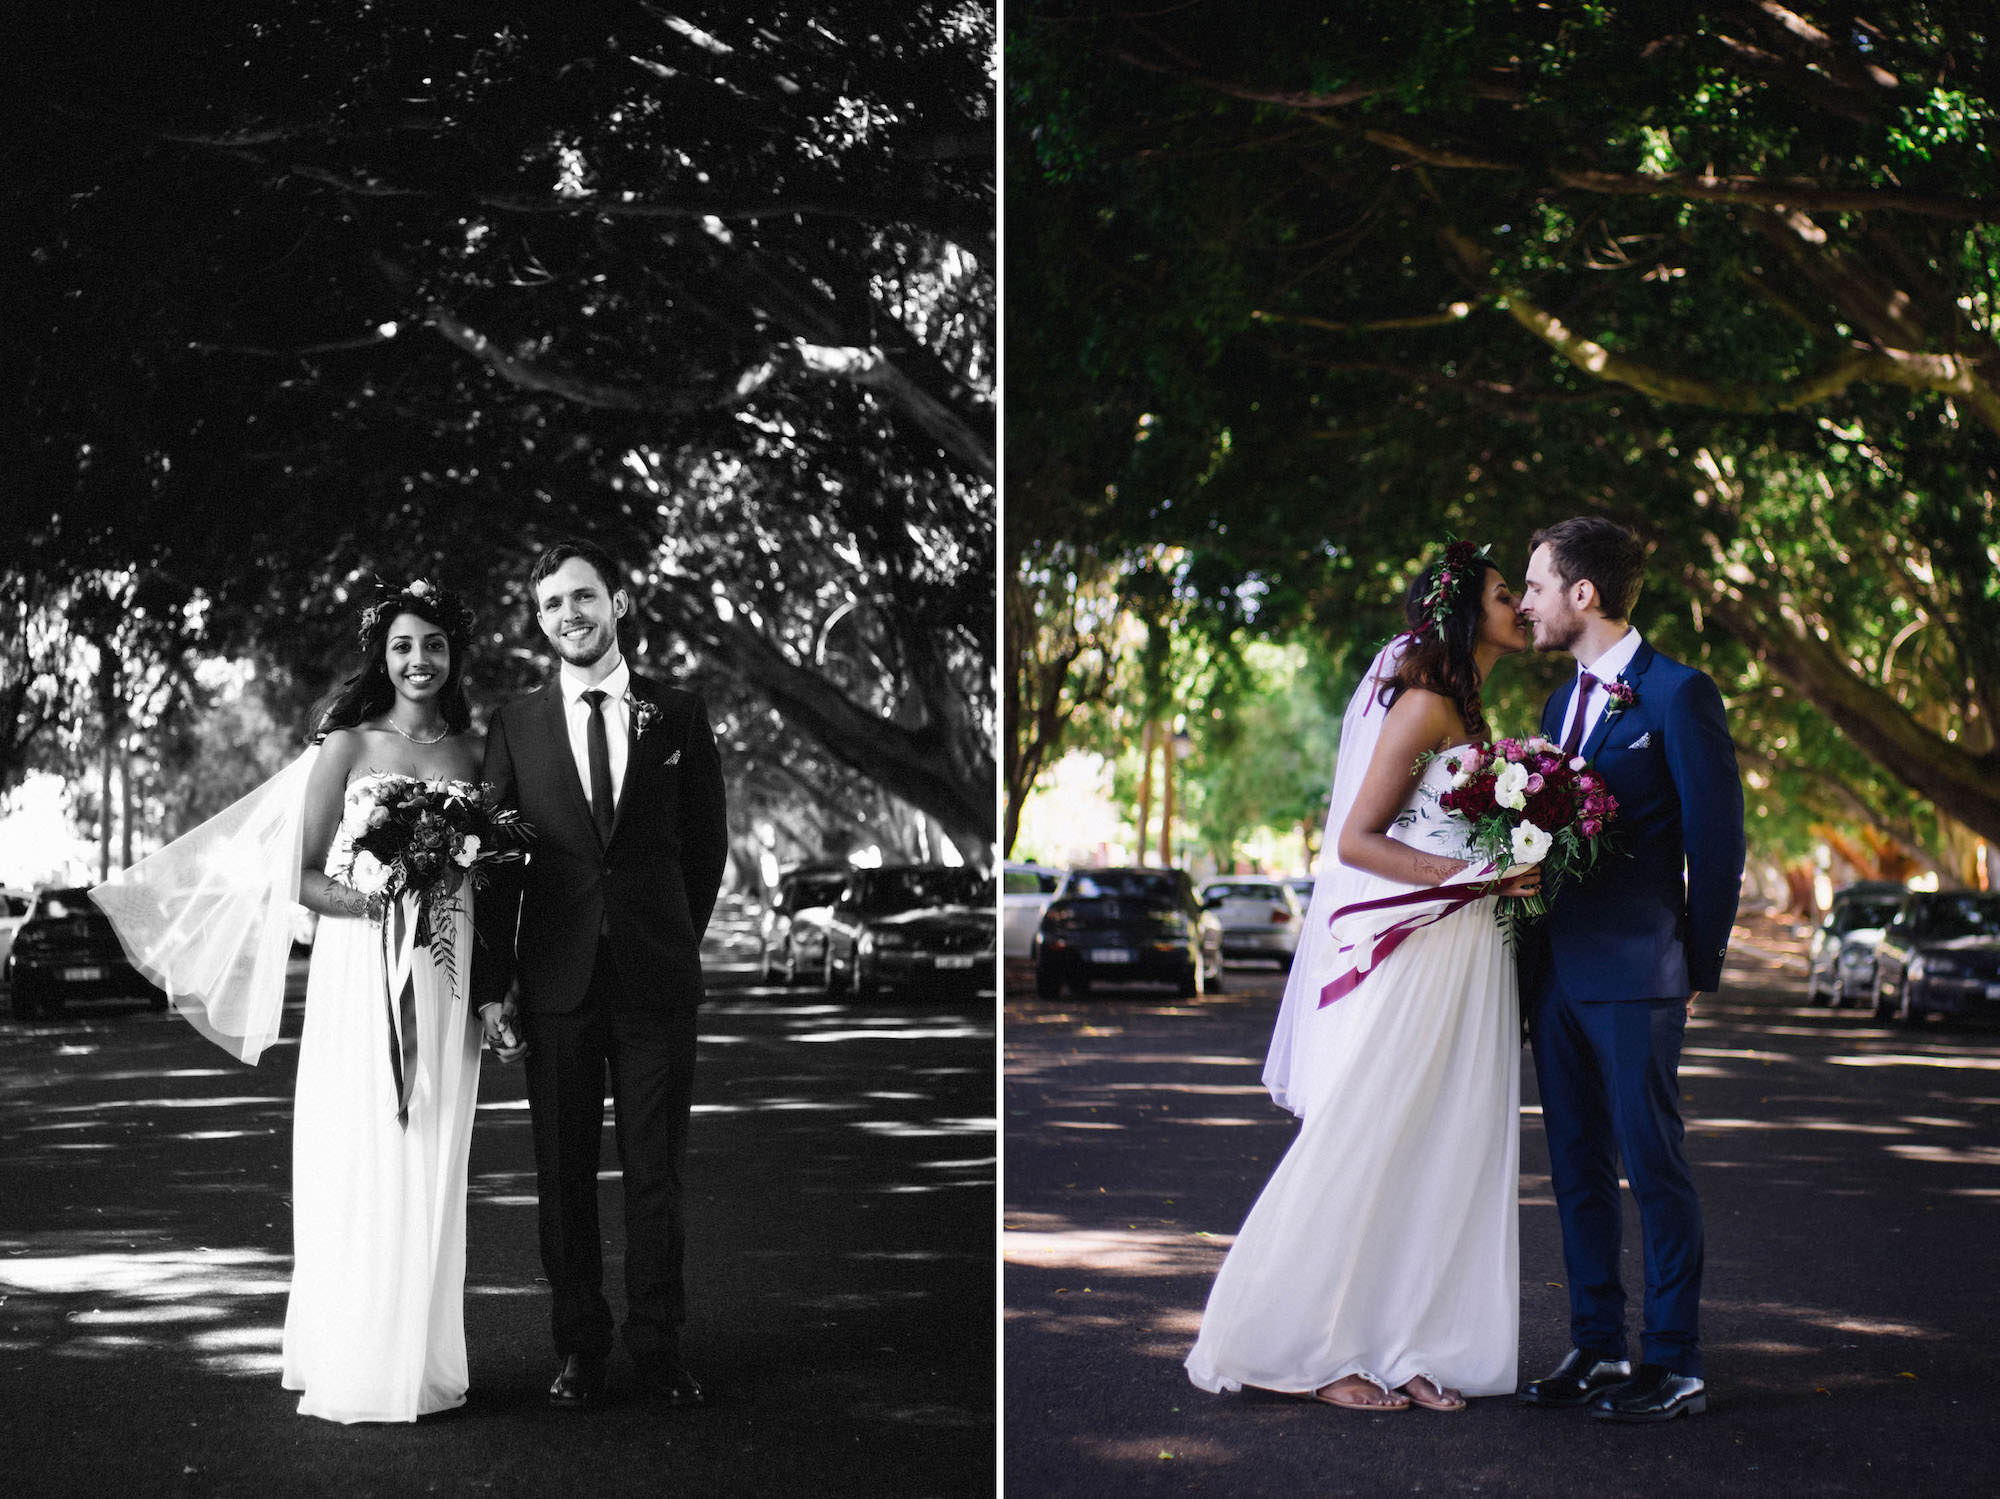 A bride & groom under Shenton Park's Moreton Bay Fig Trees taken by Rhianna May Destination Wedding Photographer